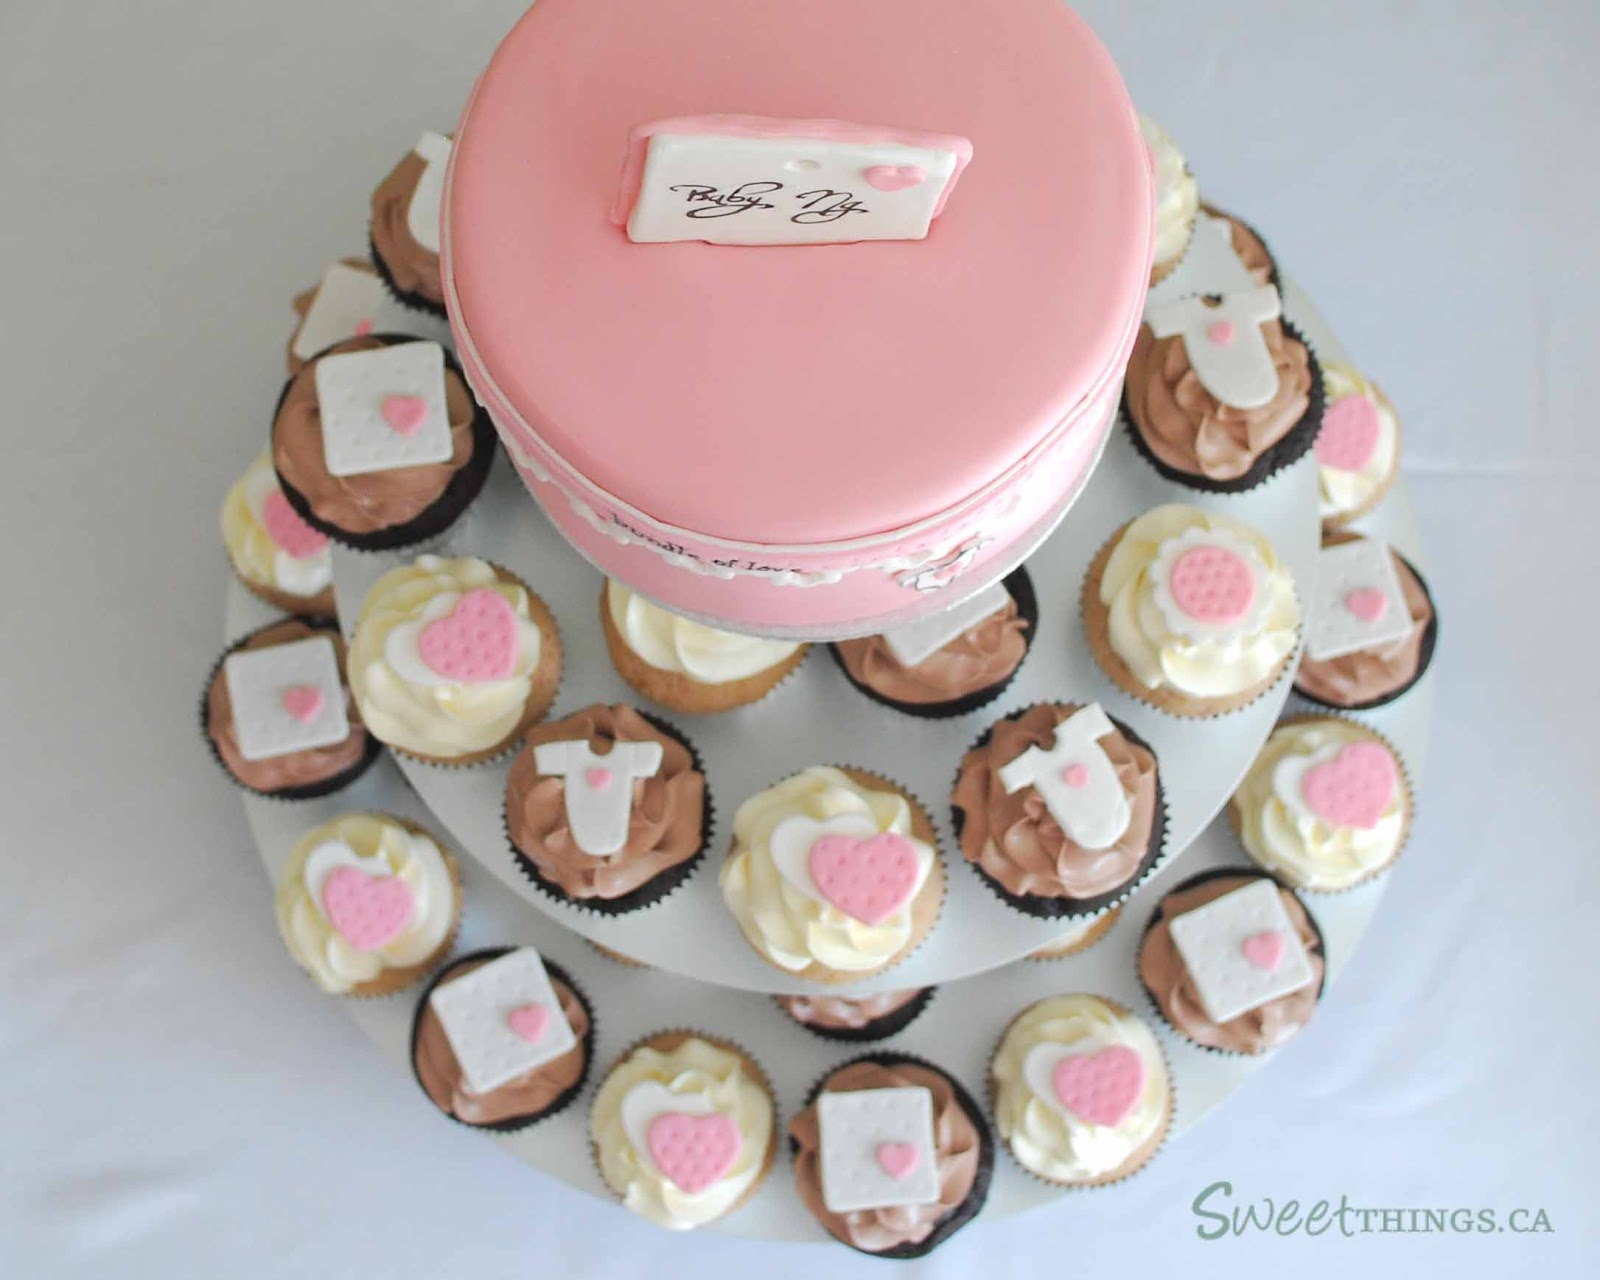 SweetThings Baby Shower Cupcake Tower